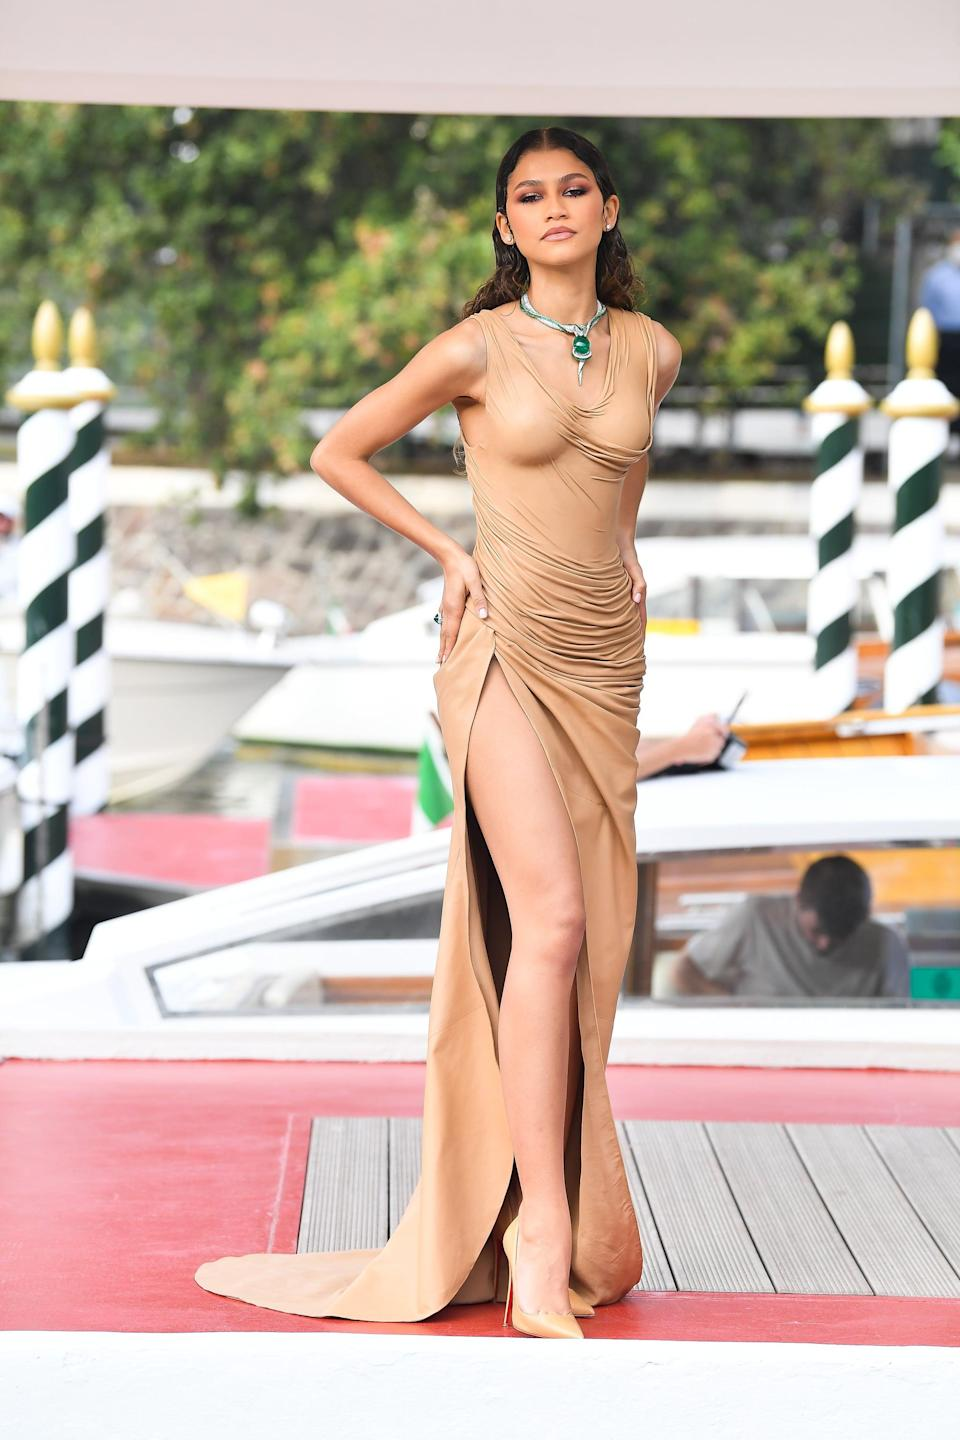 """<p>Does anyone else remember what happened at the Venice International Film Festival this year except for the fact Roach styled <a class=""""link rapid-noclick-resp"""" href=""""https://www.popsugar.com/Zendaya"""" rel=""""nofollow noopener"""" target=""""_blank"""" data-ylk=""""slk:Zendaya"""">Zendaya</a> in this Balmain look?</p>"""